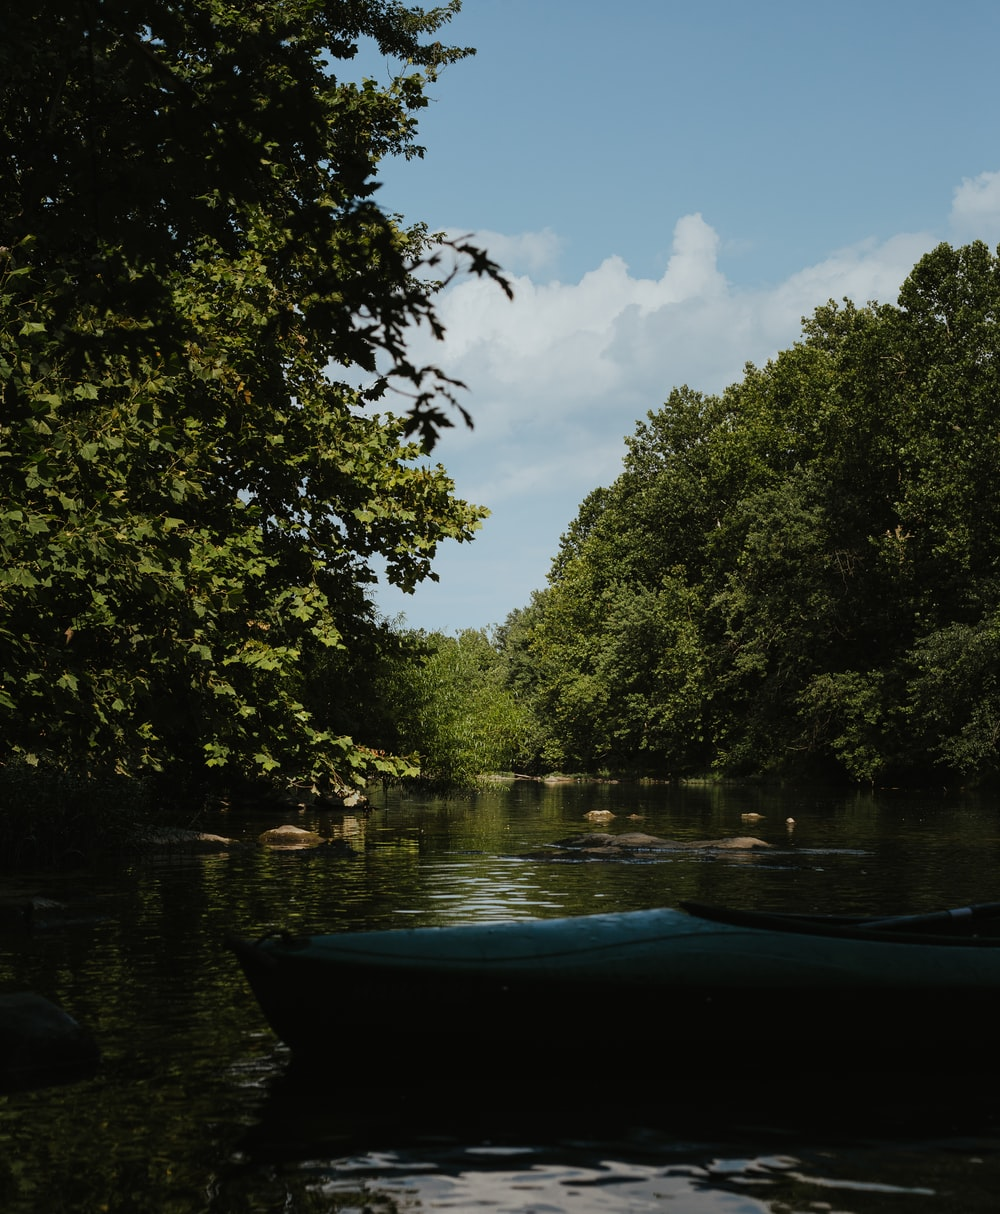 blue boat on river between green trees during daytime